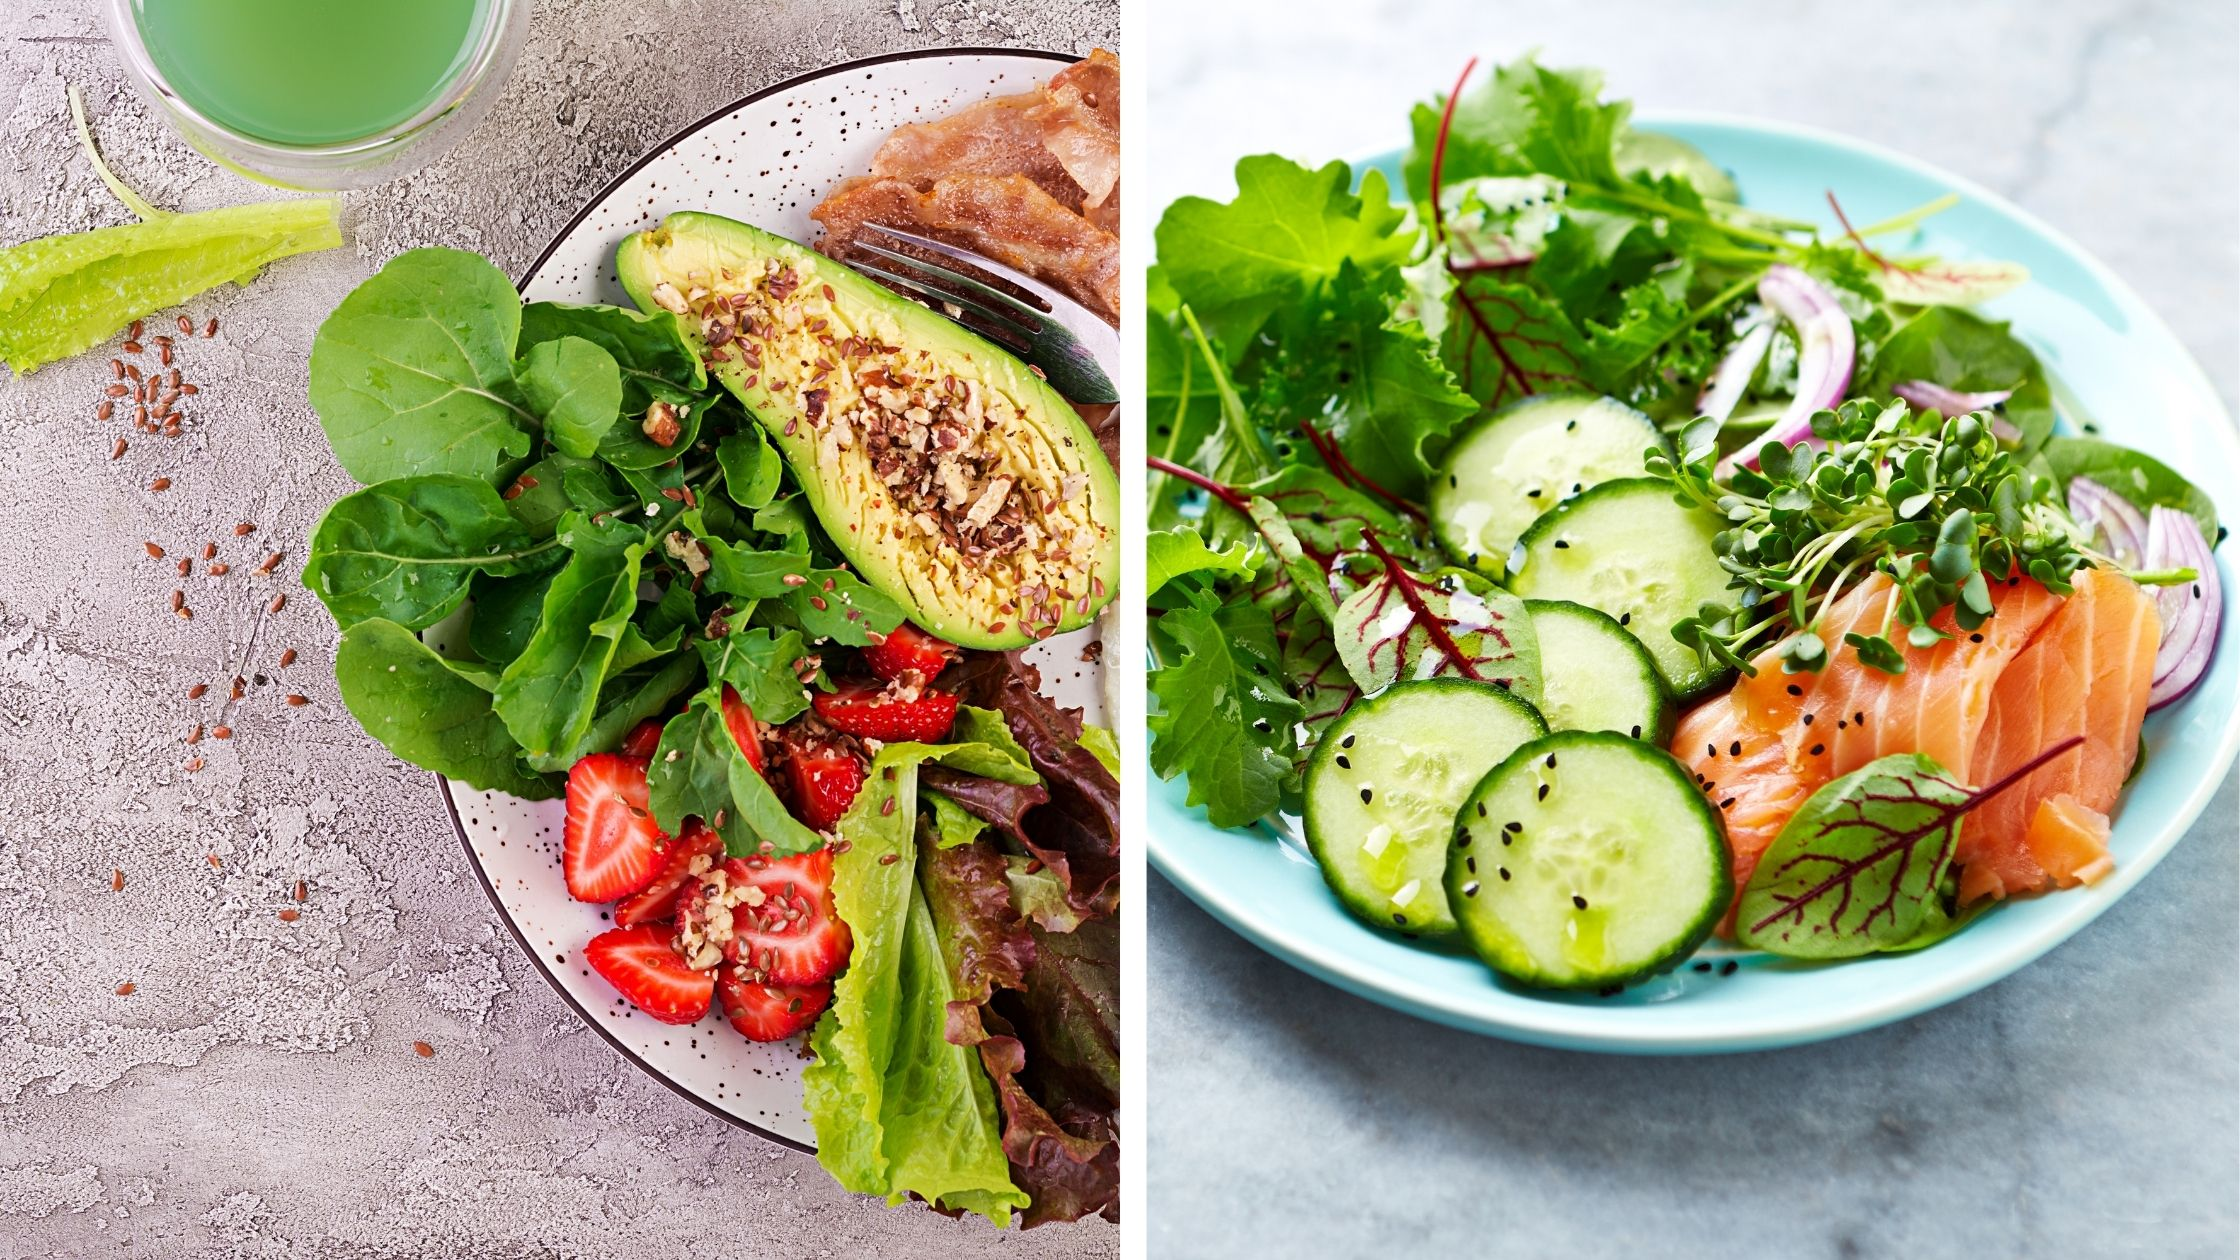 Keto diet vs Low Carb Diet: What is the most effective?